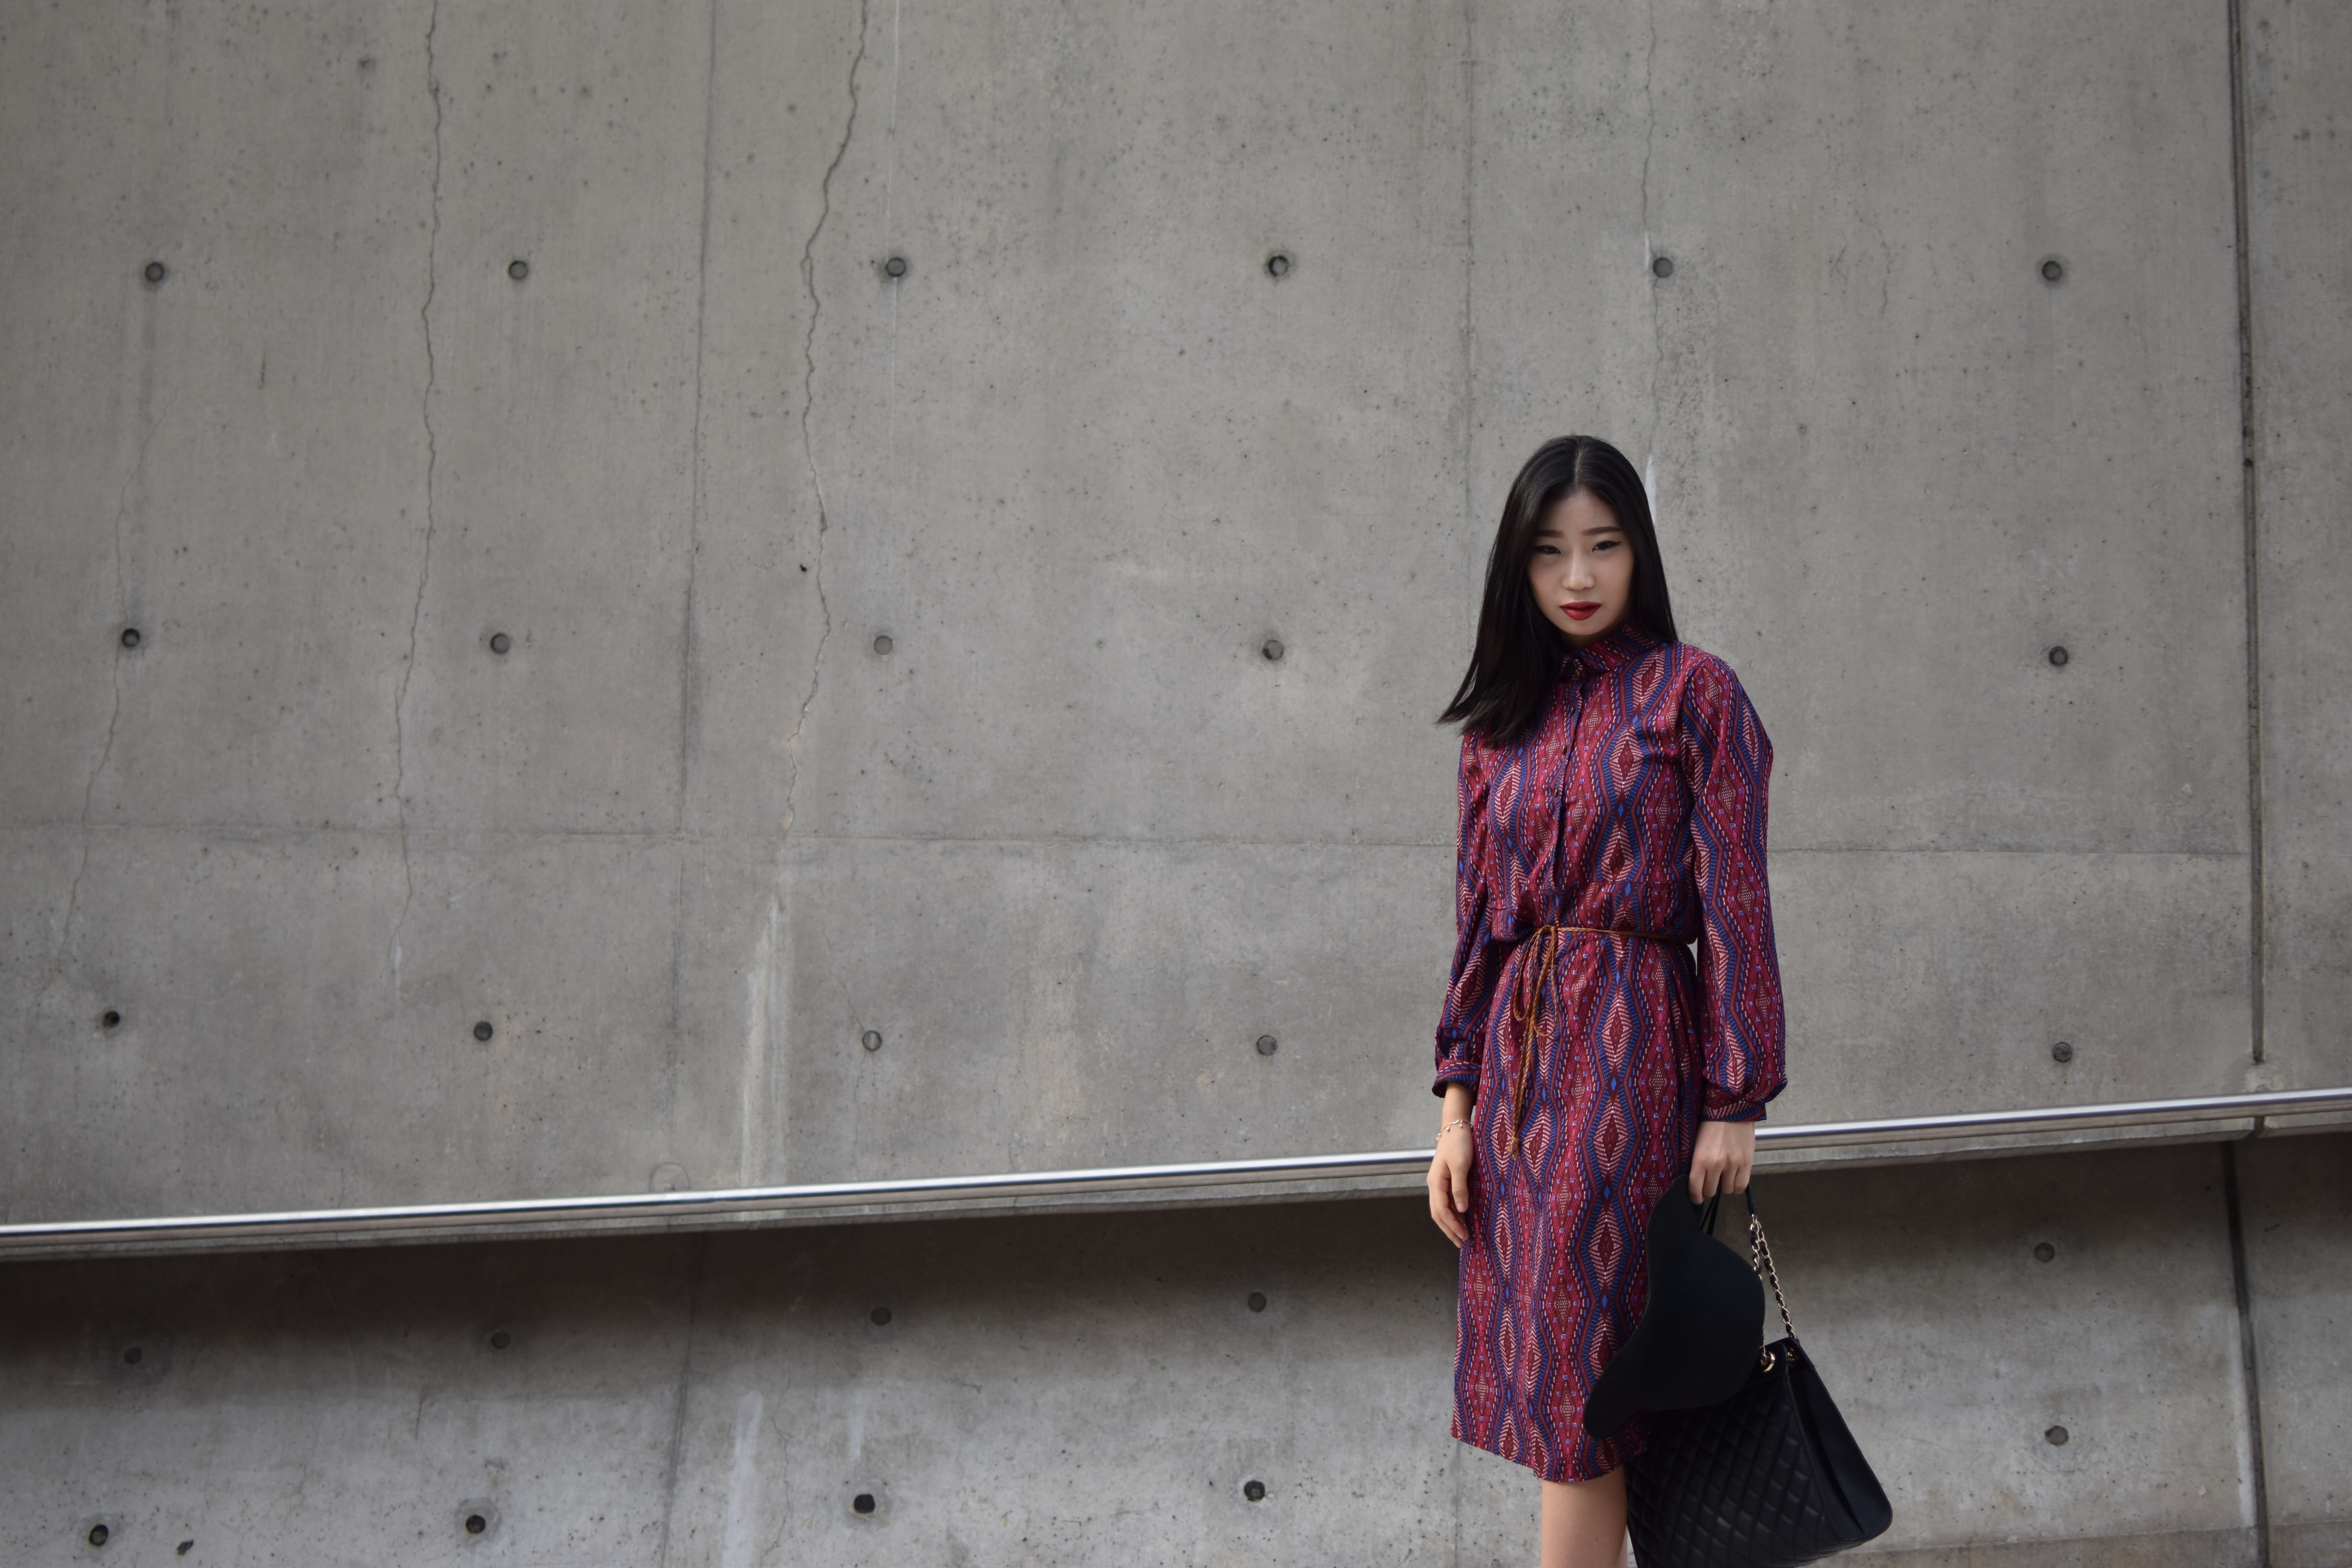 A woman in a fashionable pink-and-purple printed dress with a black purse before a stone wall